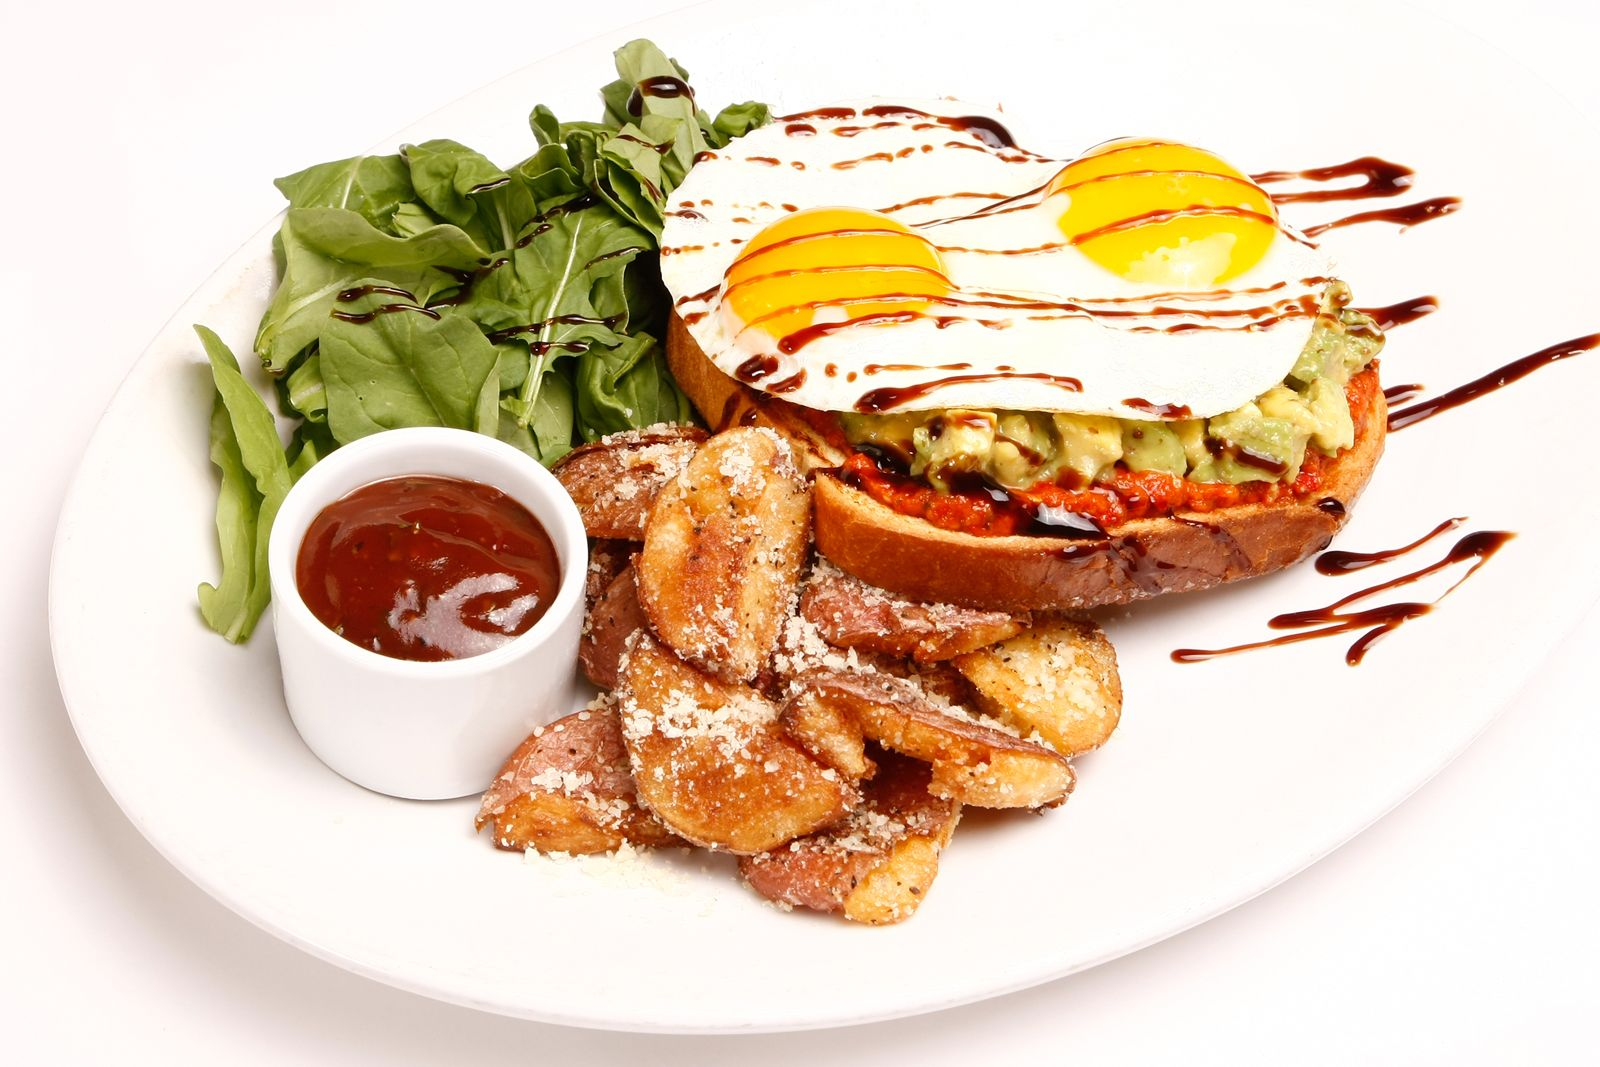 Macaroni Grill Introduces Brand New Brunch Menu with Endless Bloody Mary + Mimosa Beverages*